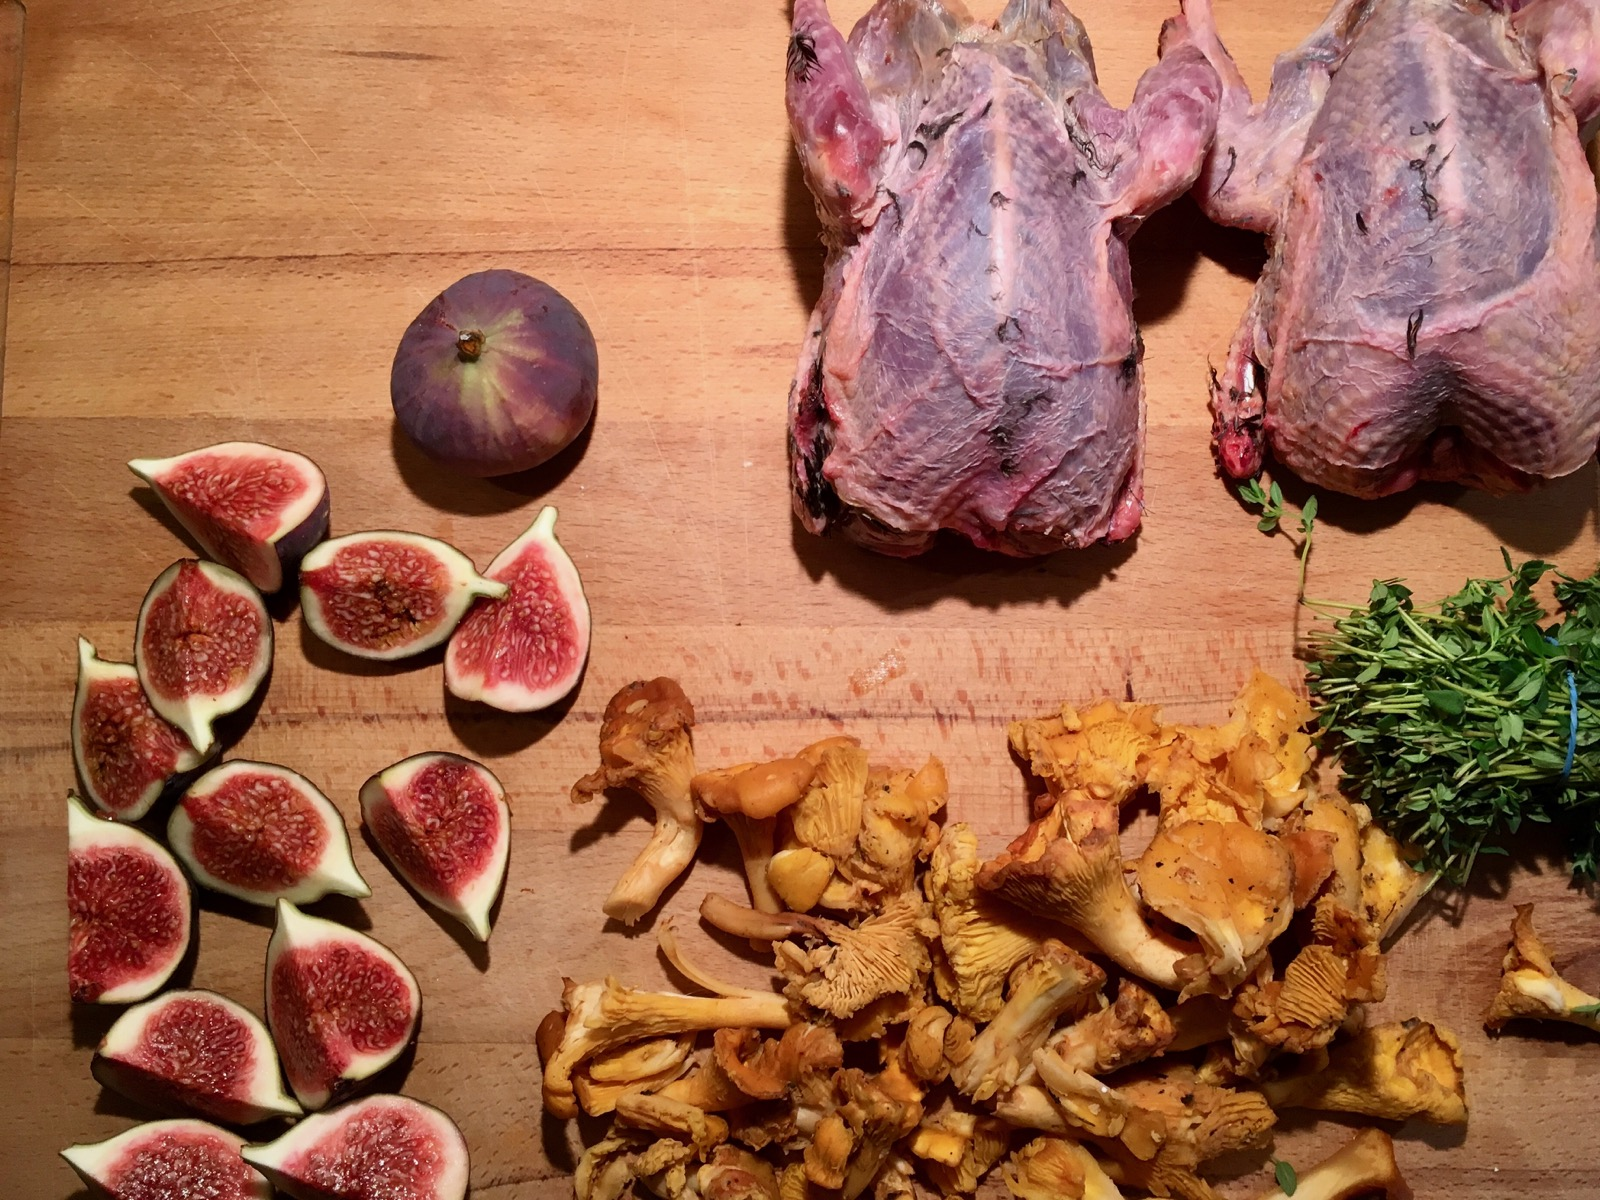 Flatlay chopping board of ingredients: Grouse, Figs, Girolles, Thyme